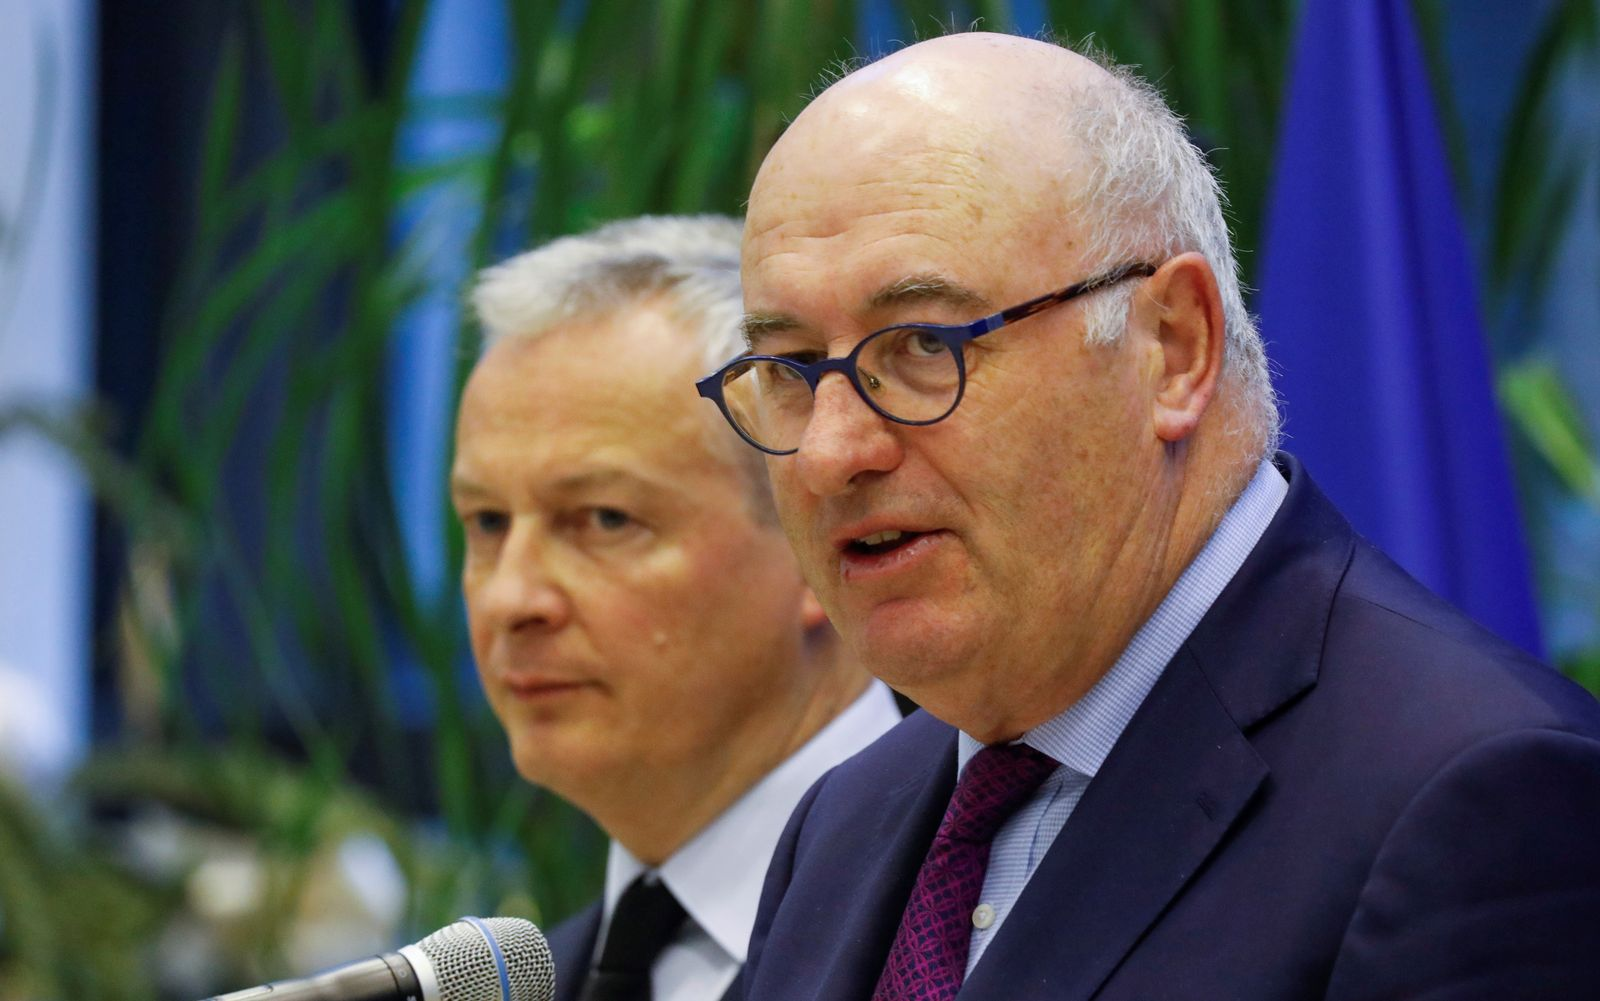 French Finance Minister Bruno Le Maire meets European Trade Commissioner Phil Hogan at the Bercy Finance Ministry in Paris